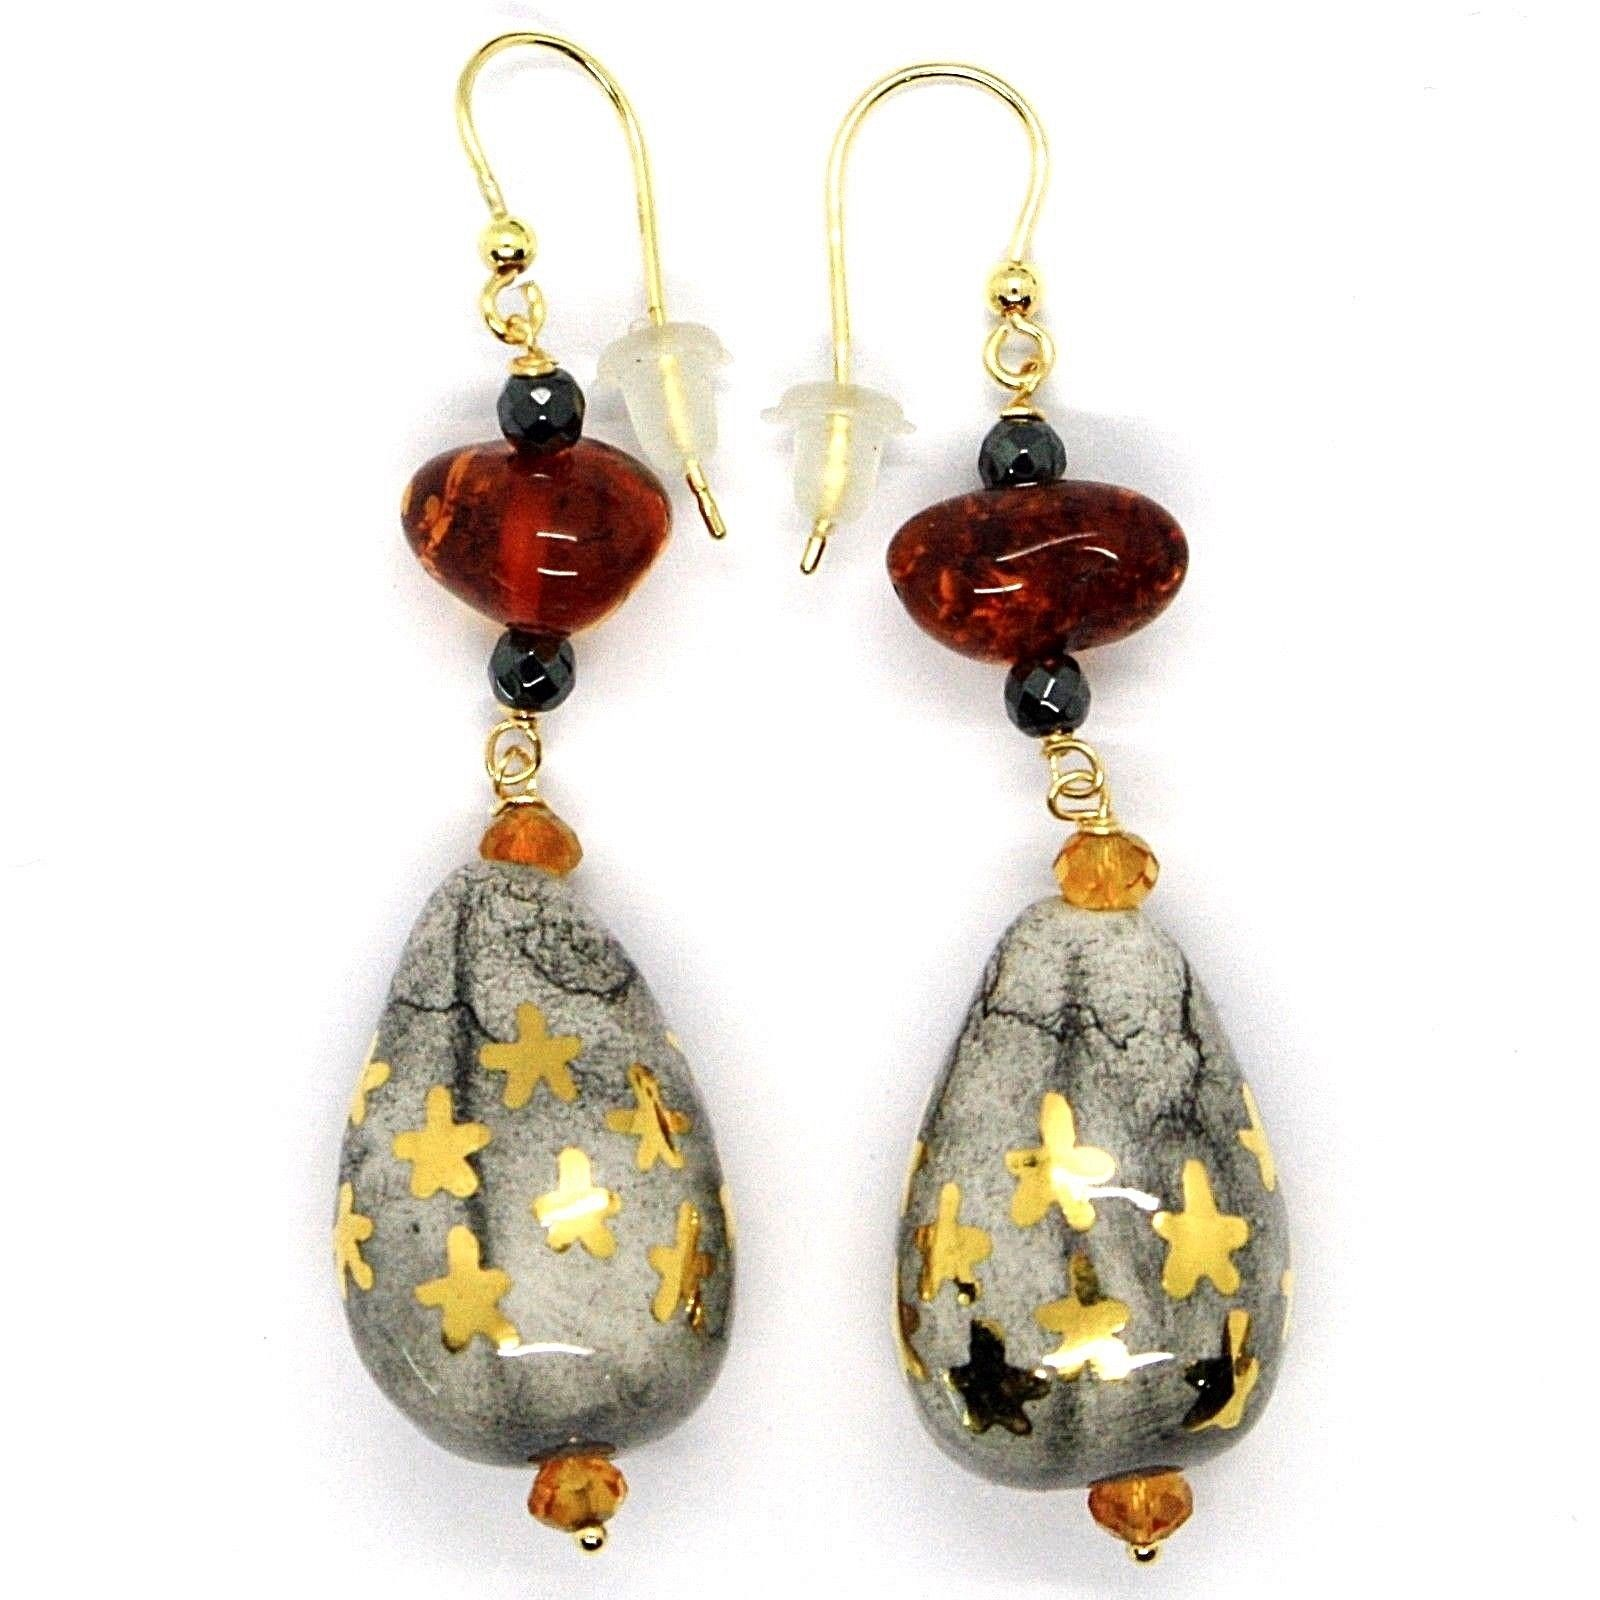 18K YELLOW GOLD EARRINGS AMBER, CITRINE POTTERY DROPS HAND PAINTED IN ITALY STAR